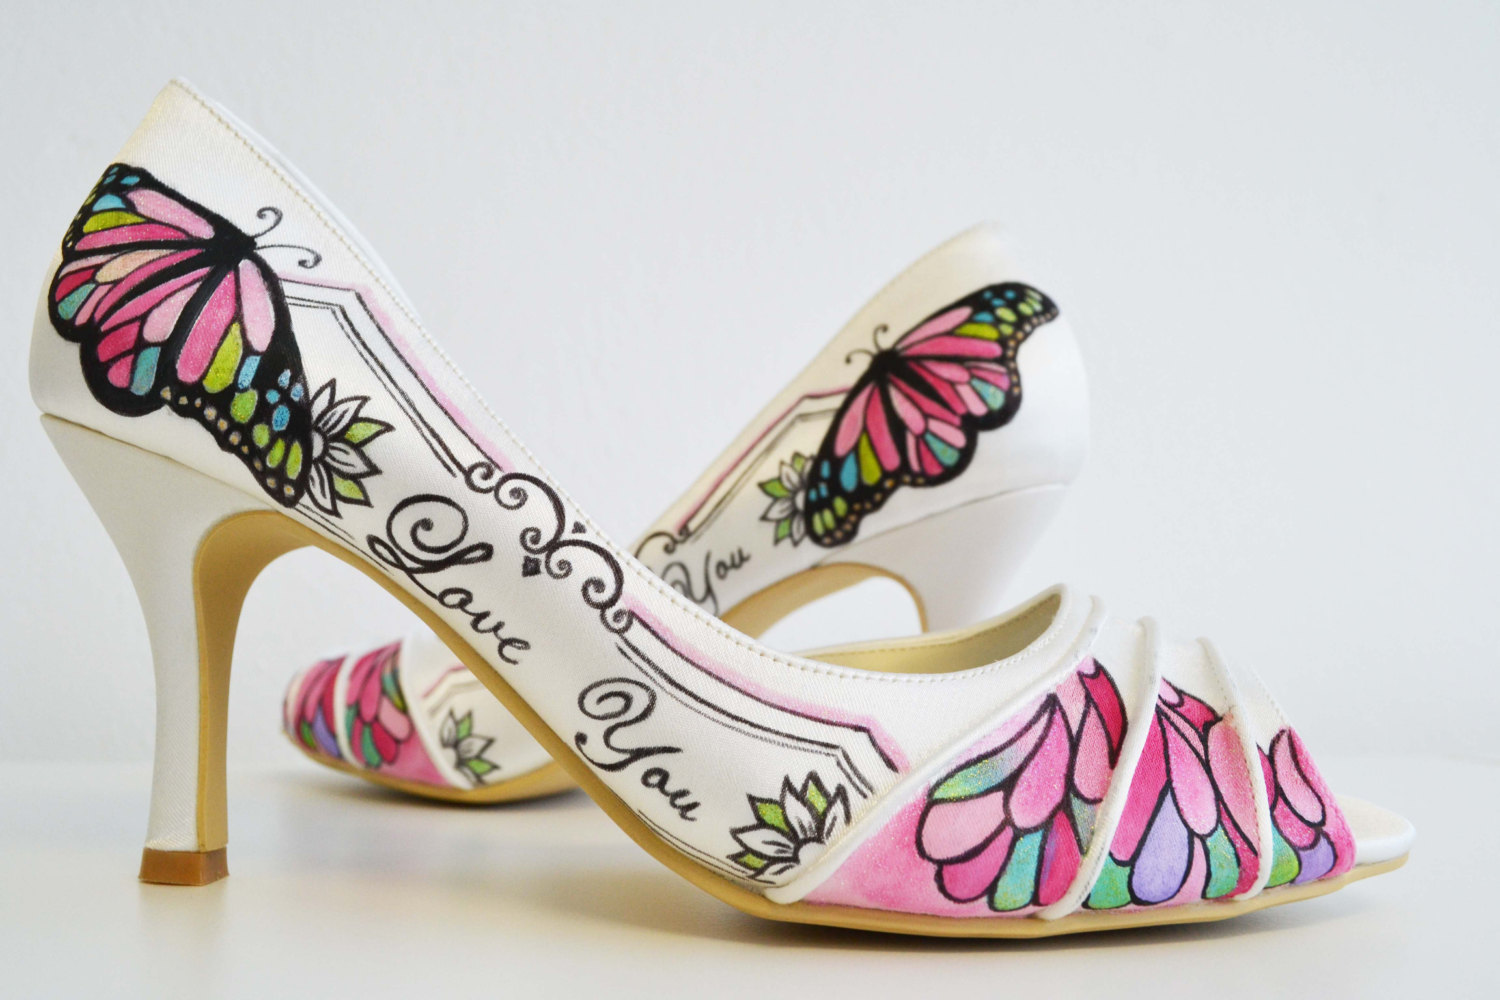 Wedding Shoes   Bridal Shoes   Love You Shoes  Hand Painted Heels  Pink  Shoes